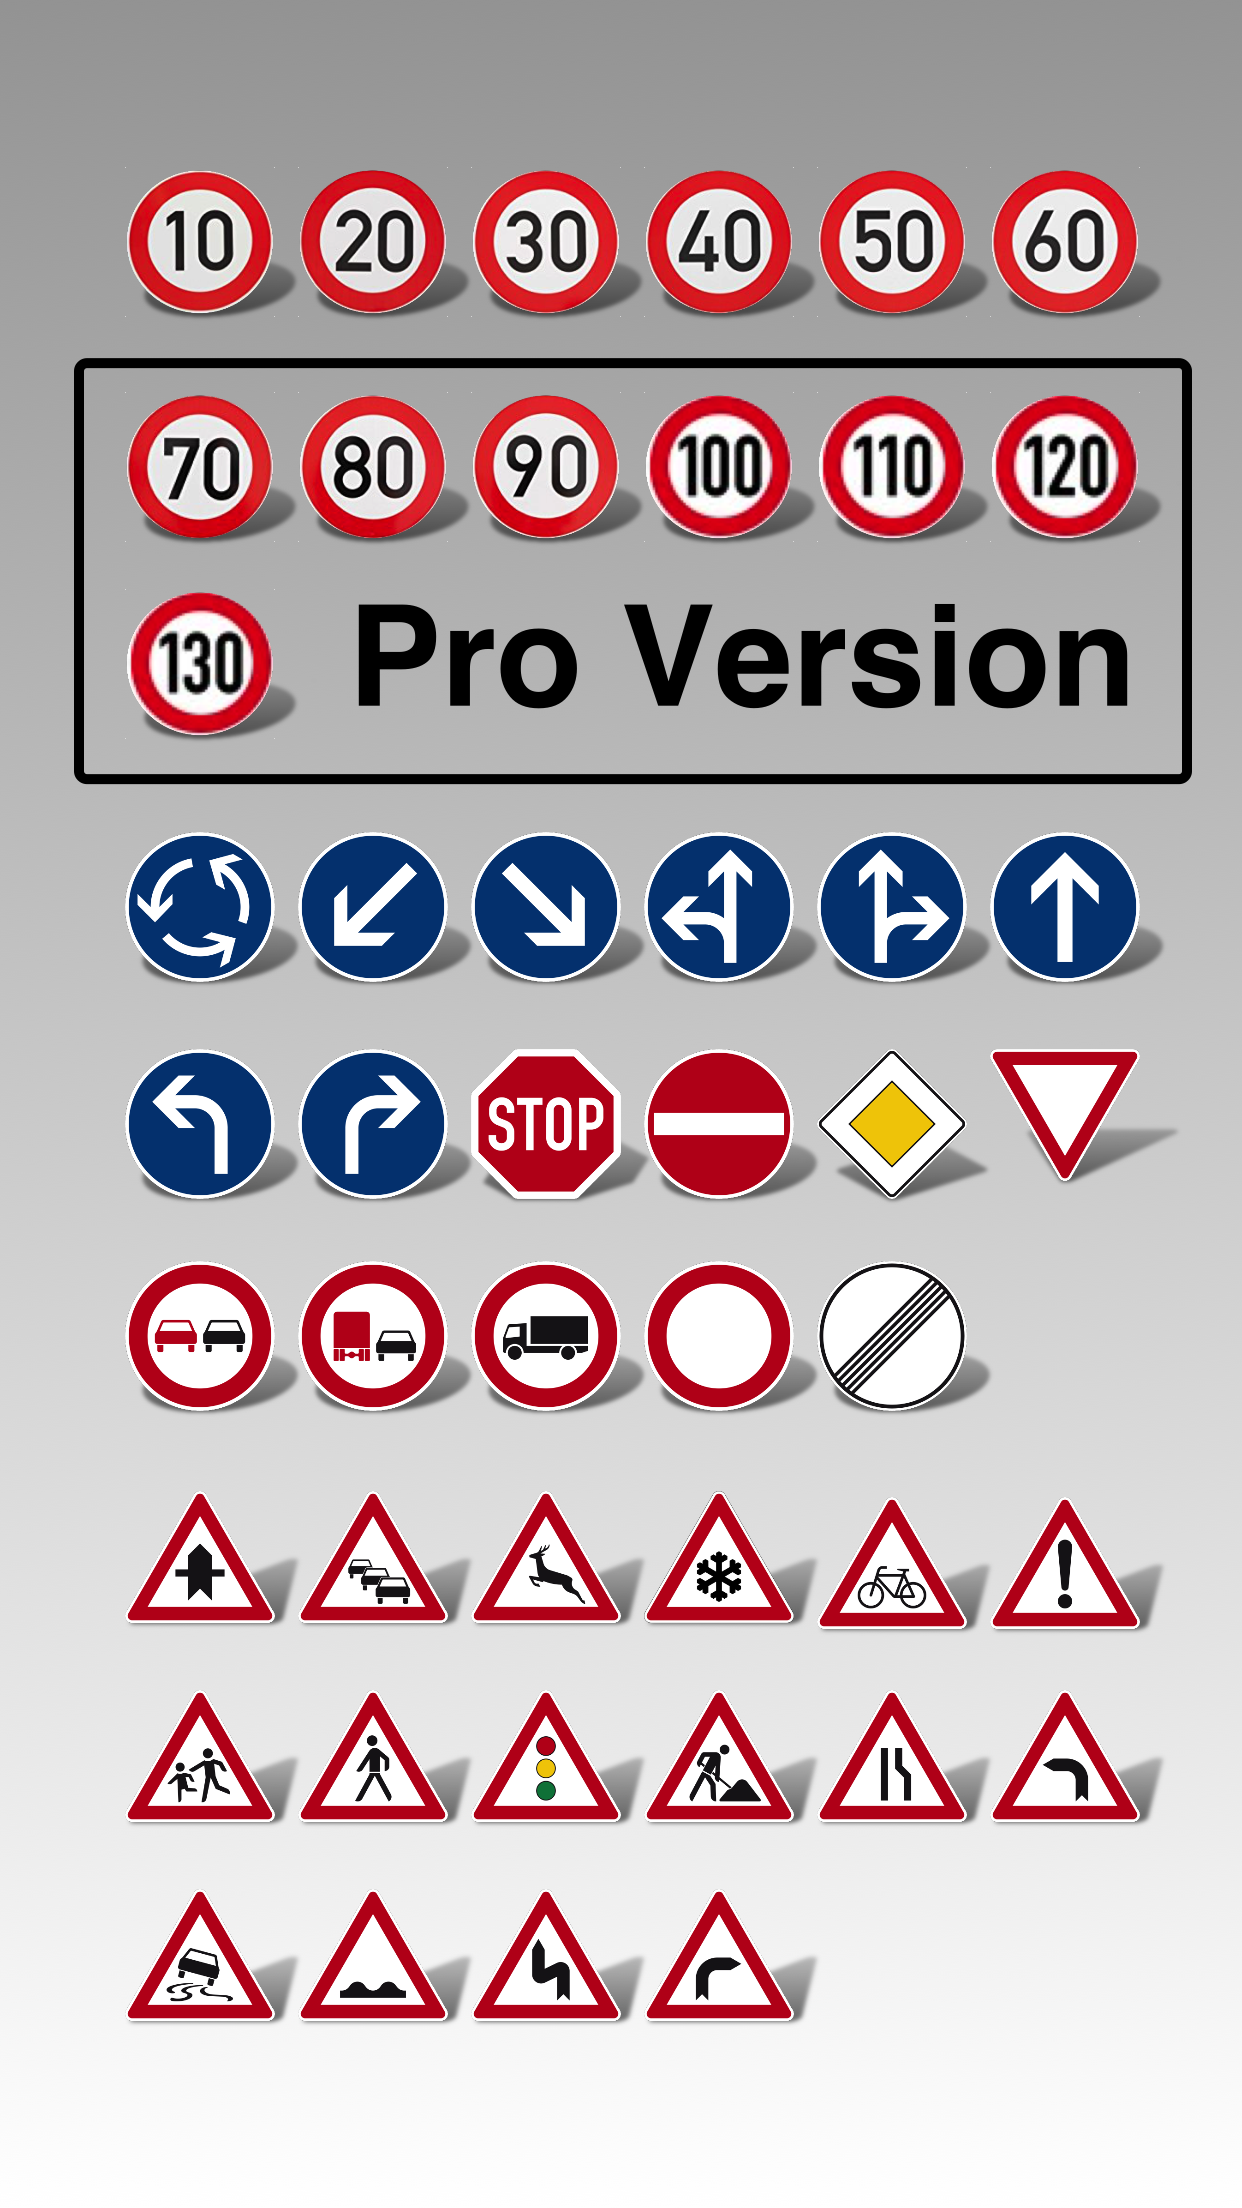 Supported traffic signs